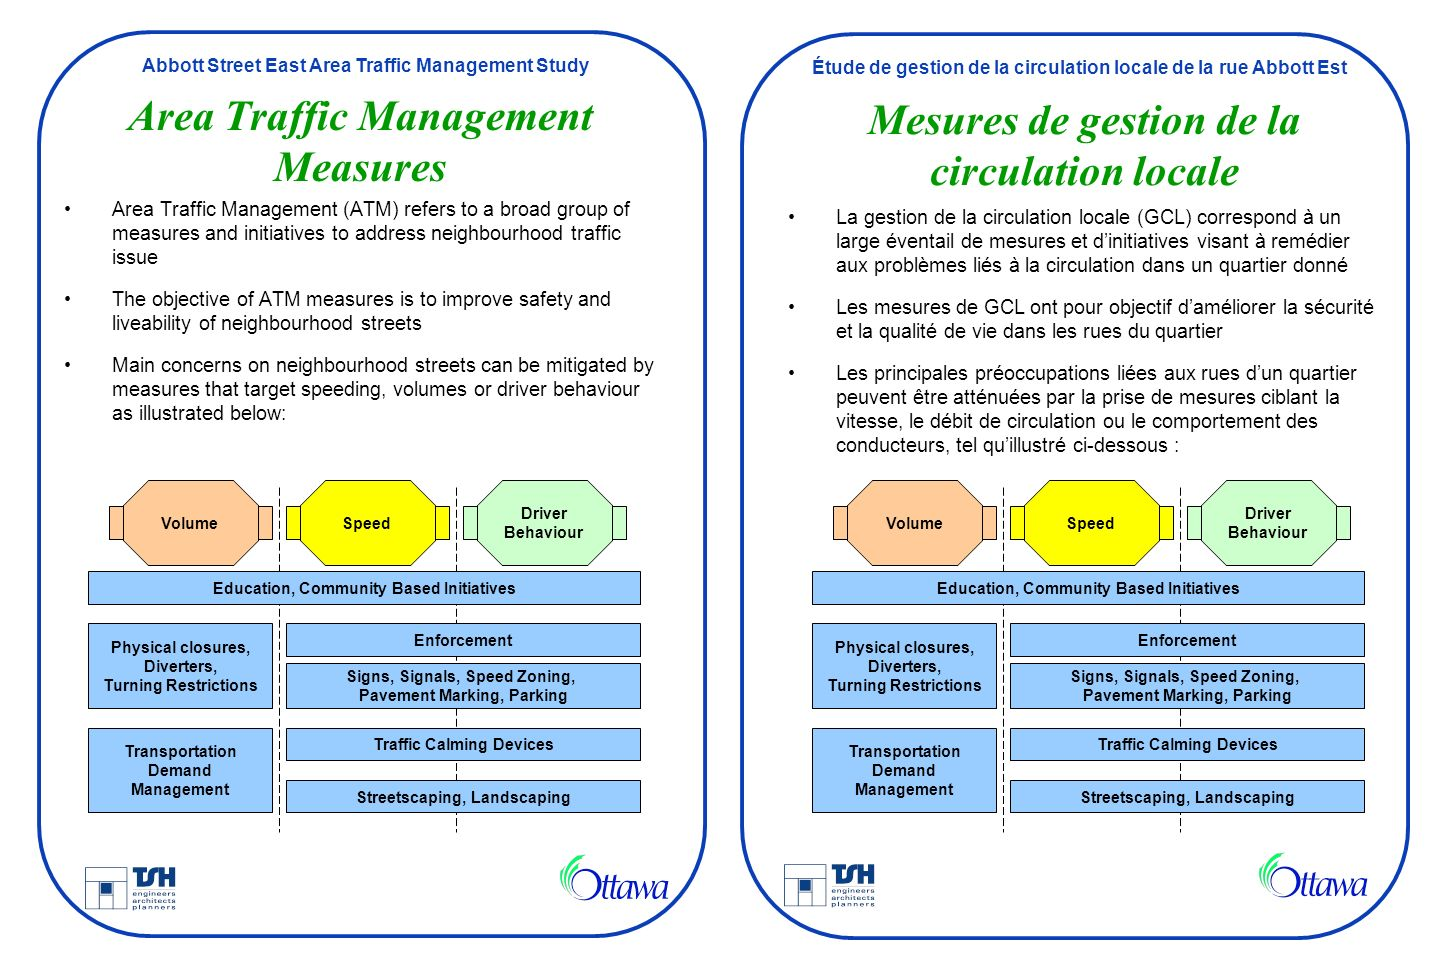 Area Traffic Management Measures